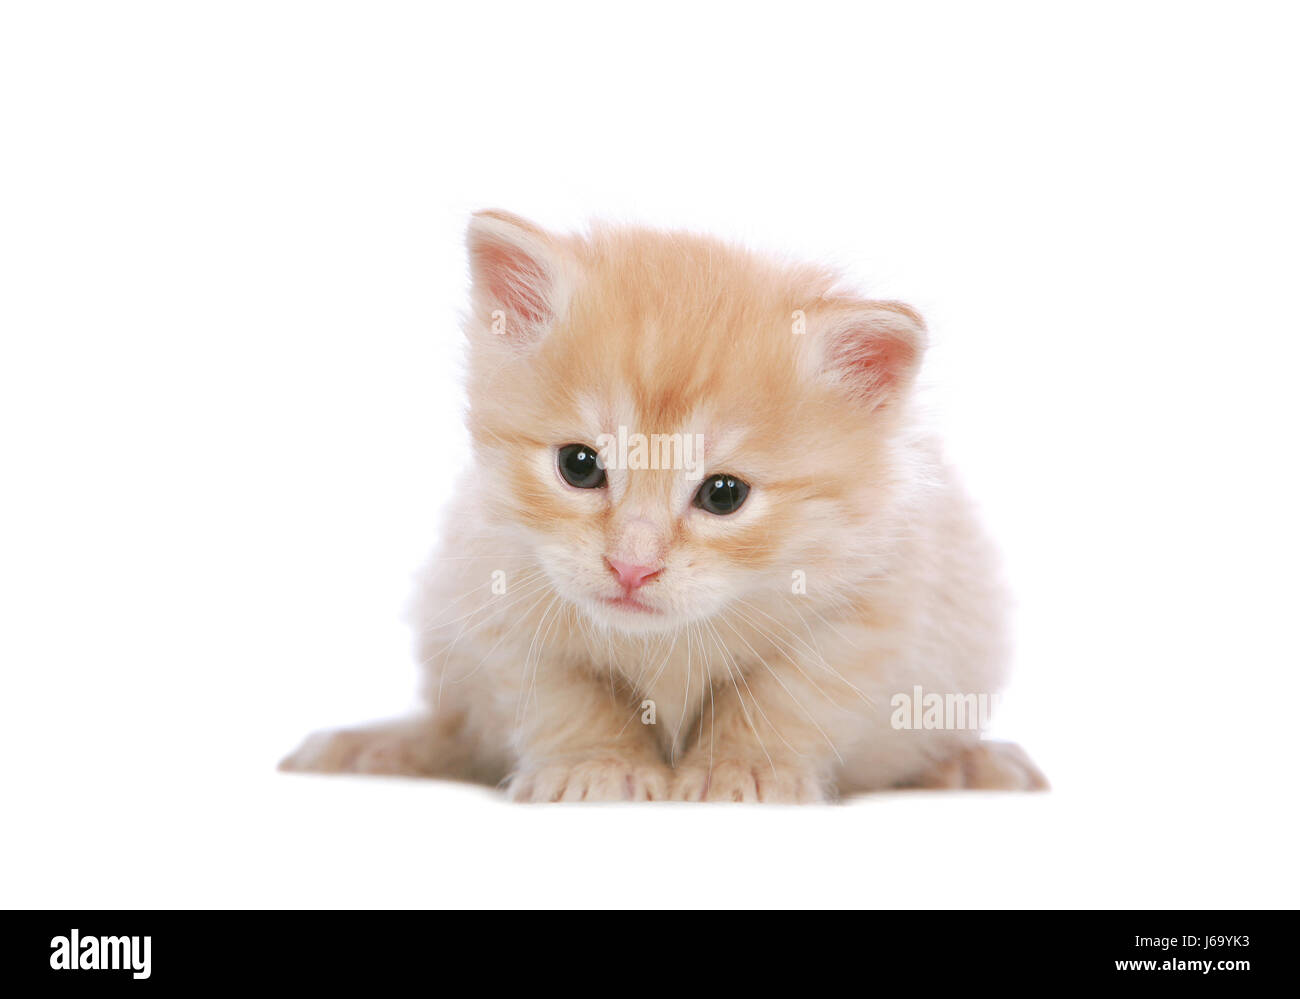 Cat Baby Kitten Ginger Angora White Red Eyes Cats Ears Look Glancing